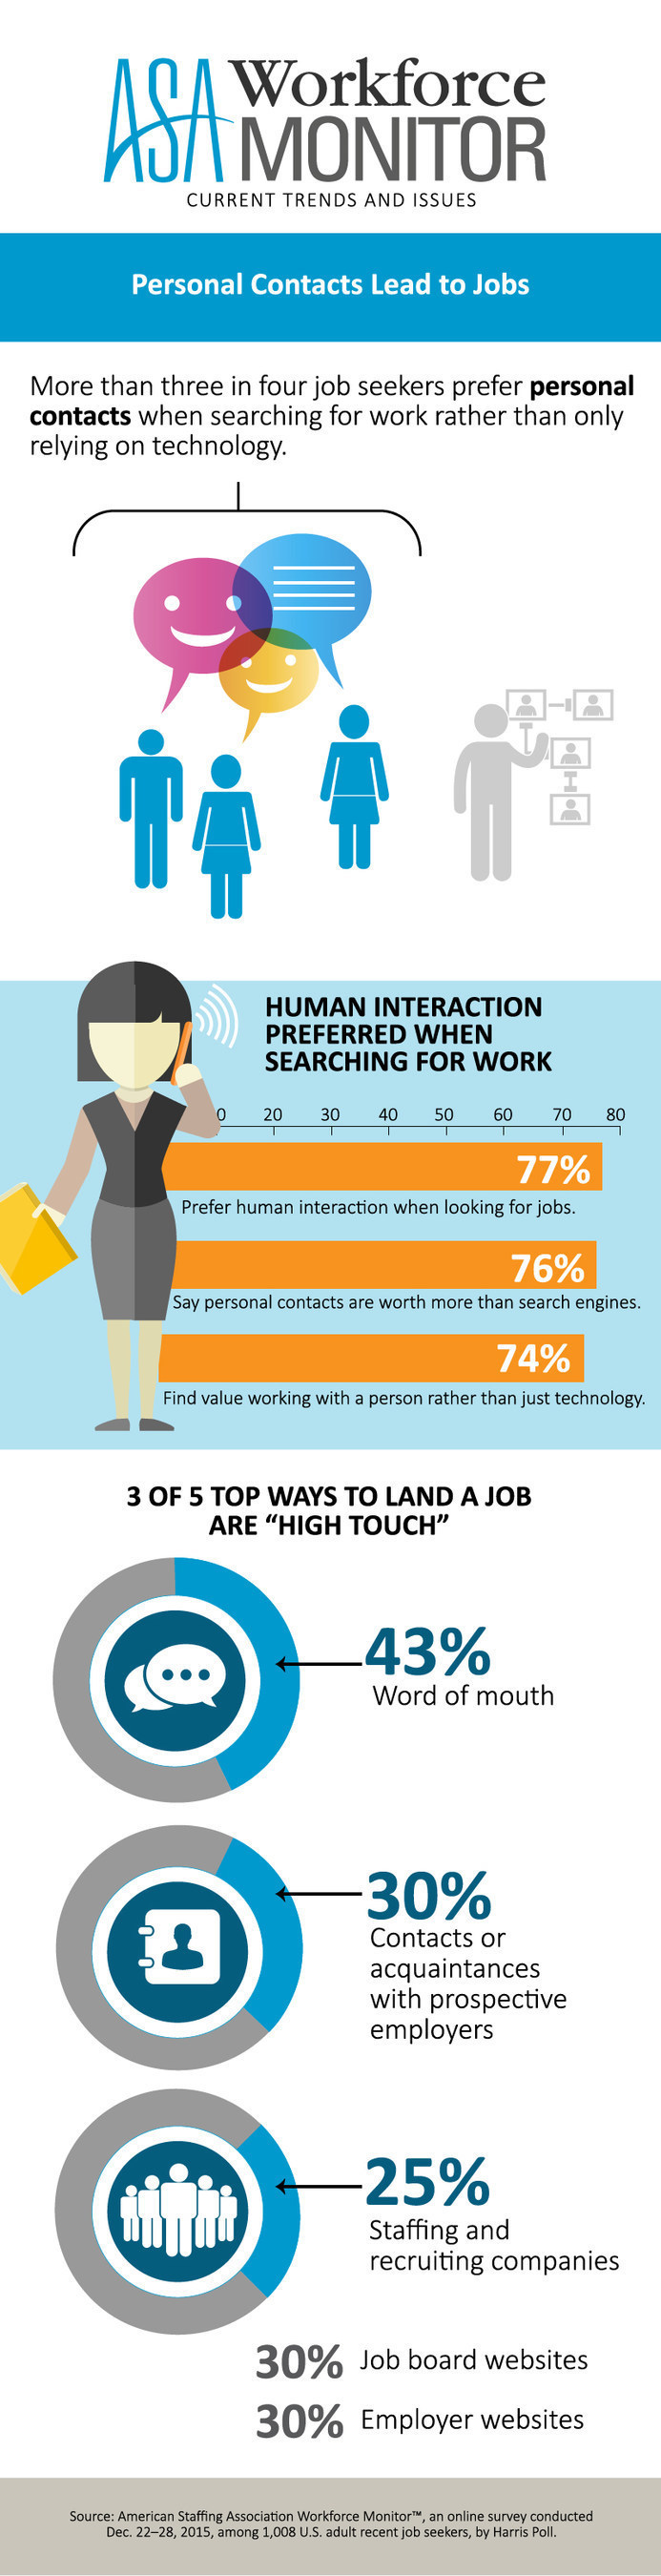 American Staffing Association Infographic